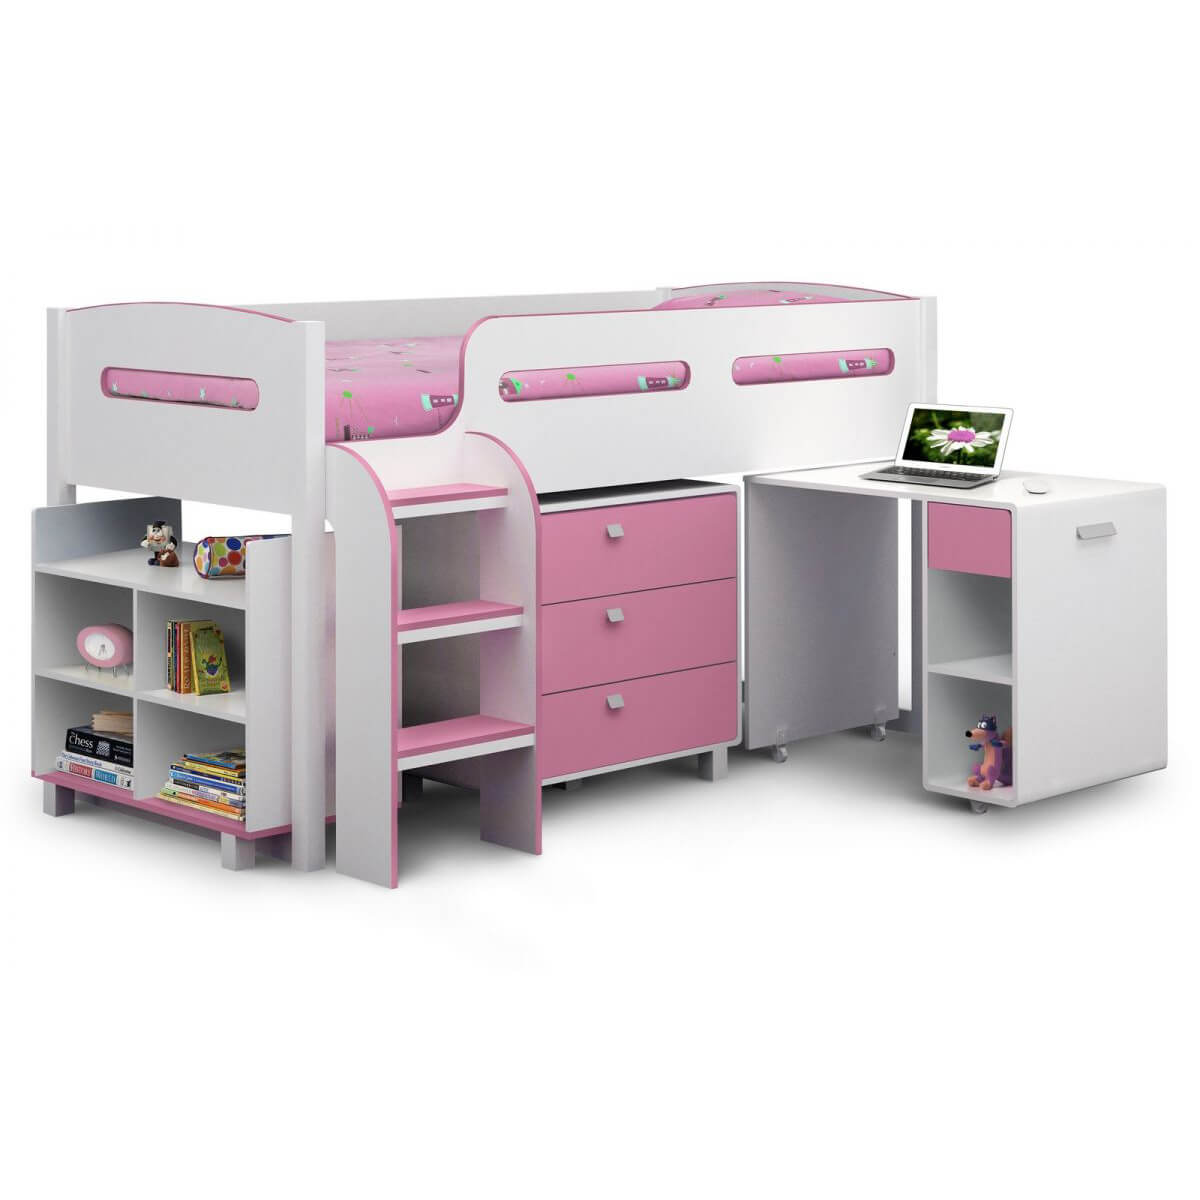 Kiddo Single Cabin Bed with Storage Pink & White | FADS